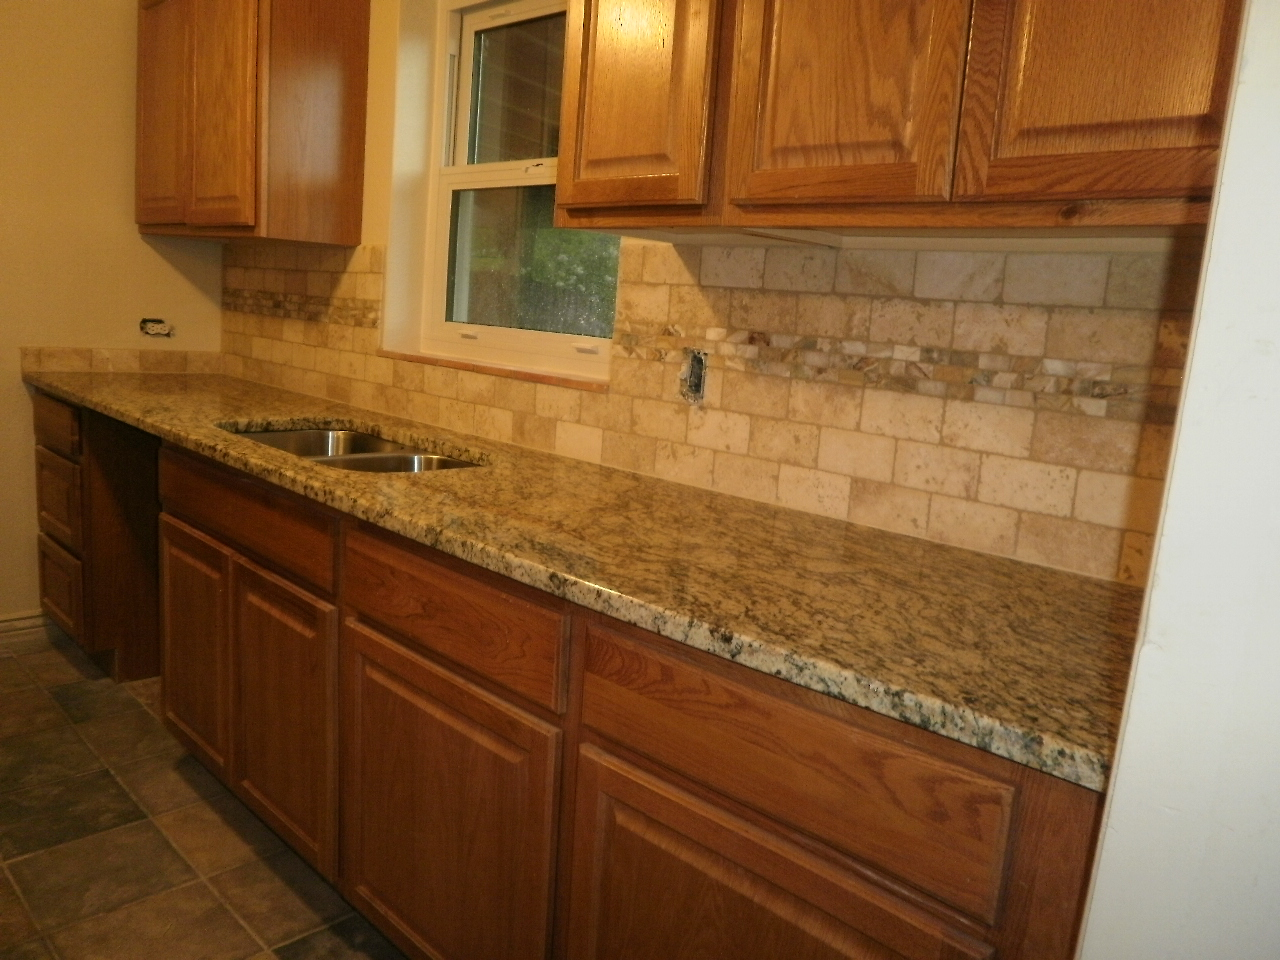 Santa cecilia granite backsplash ideas - Mosaic kitchen ...